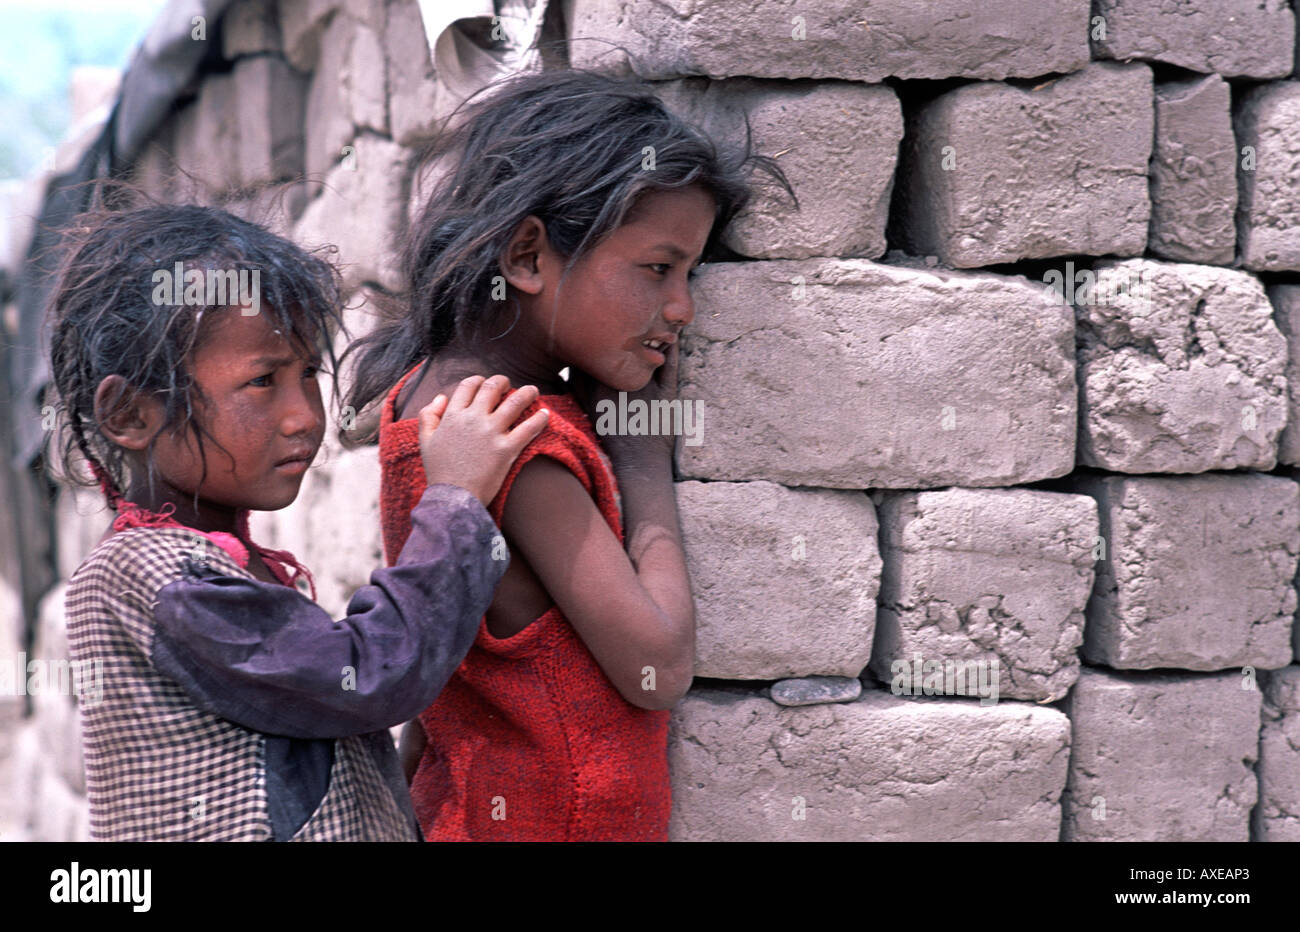 The daughters of Nepalese refugees peering around the adobe blocks of their makeshift home near Leh beside the Leh Stok junction - Stock Image